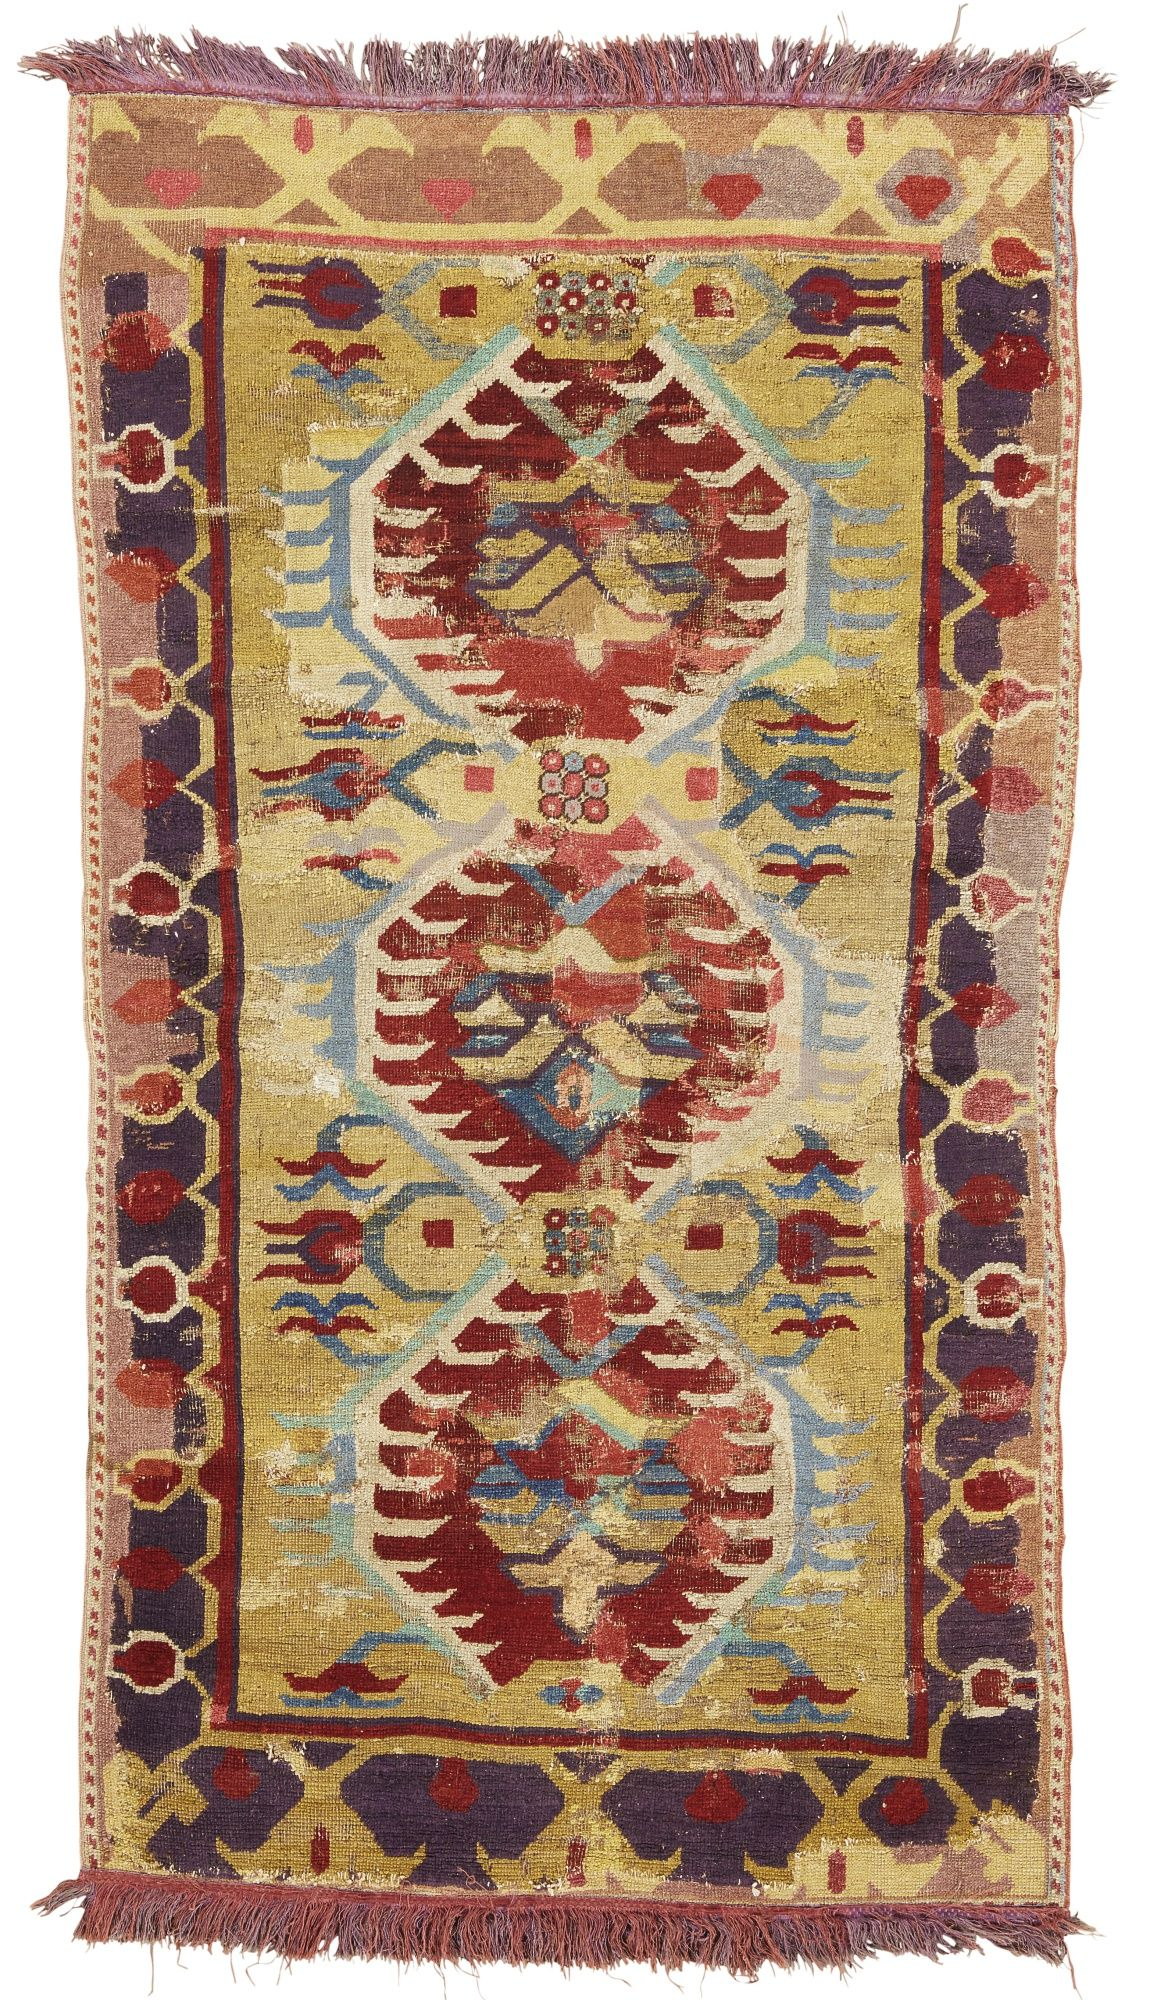 A 'Karapinar' rug fragment, Central Anatolia approximately